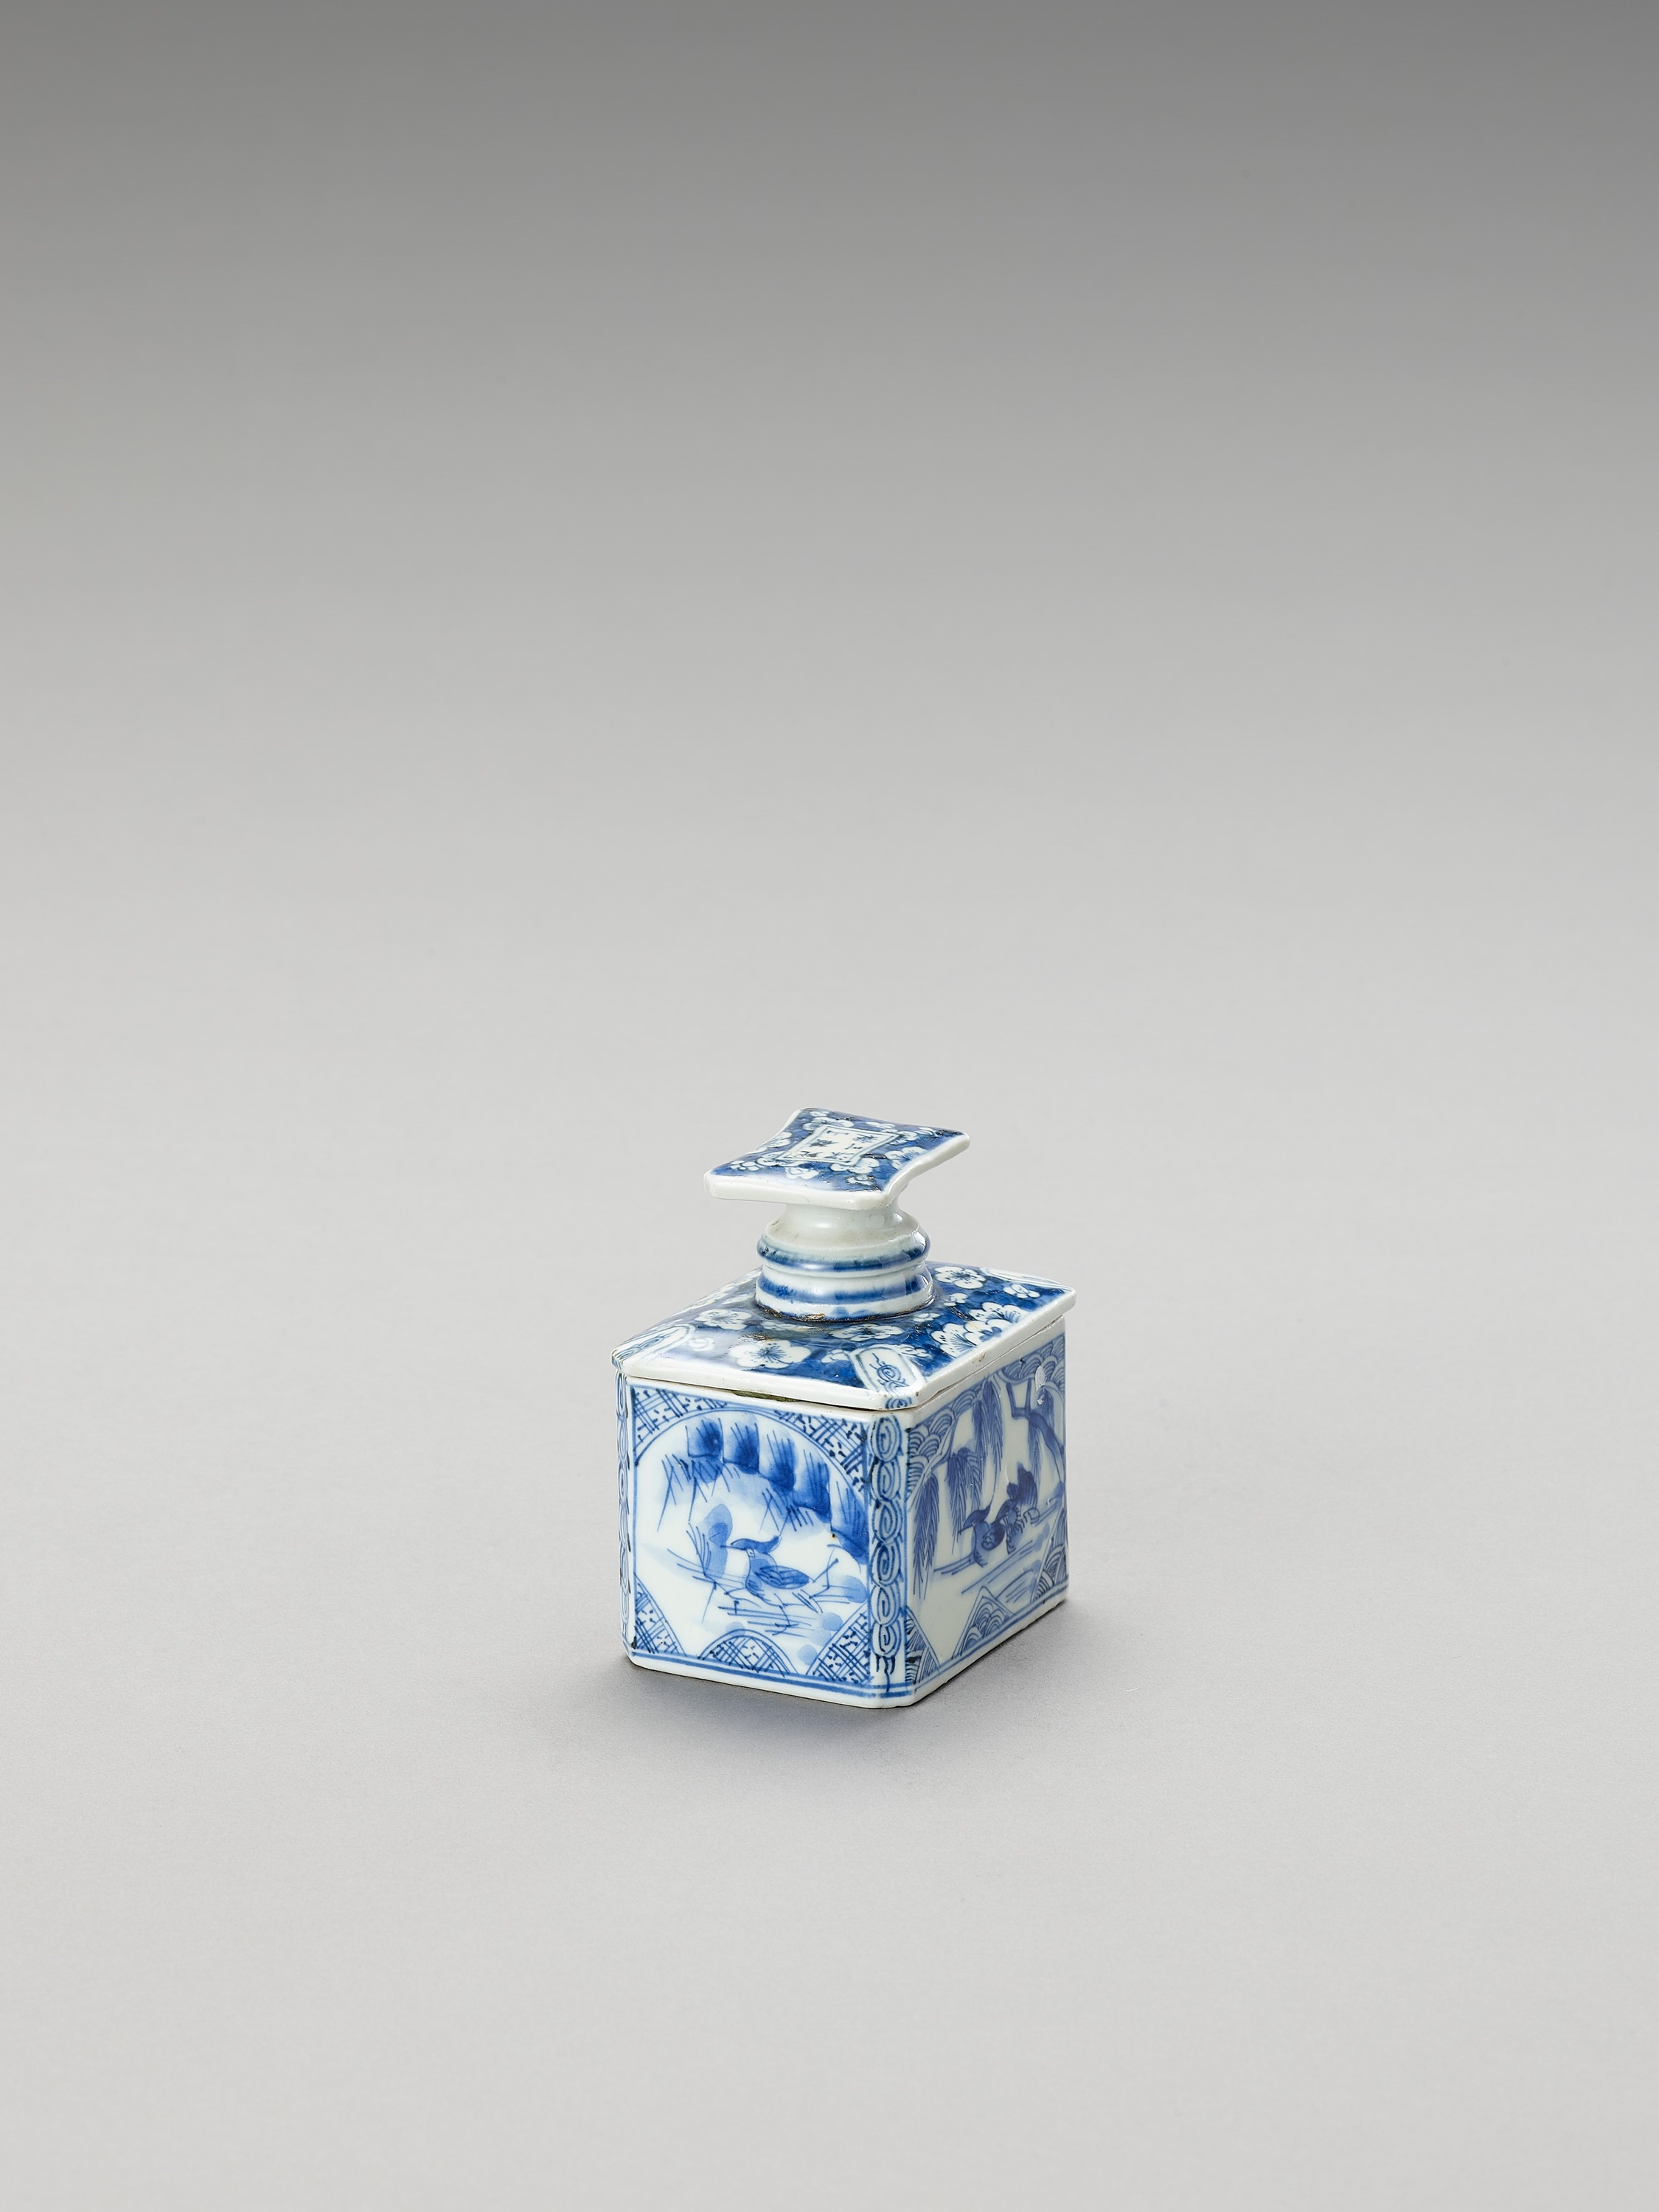 A BLUE AND WHITE FUKAGAWA PORCELAIN TEA CADDY AND COVER - Image 3 of 7